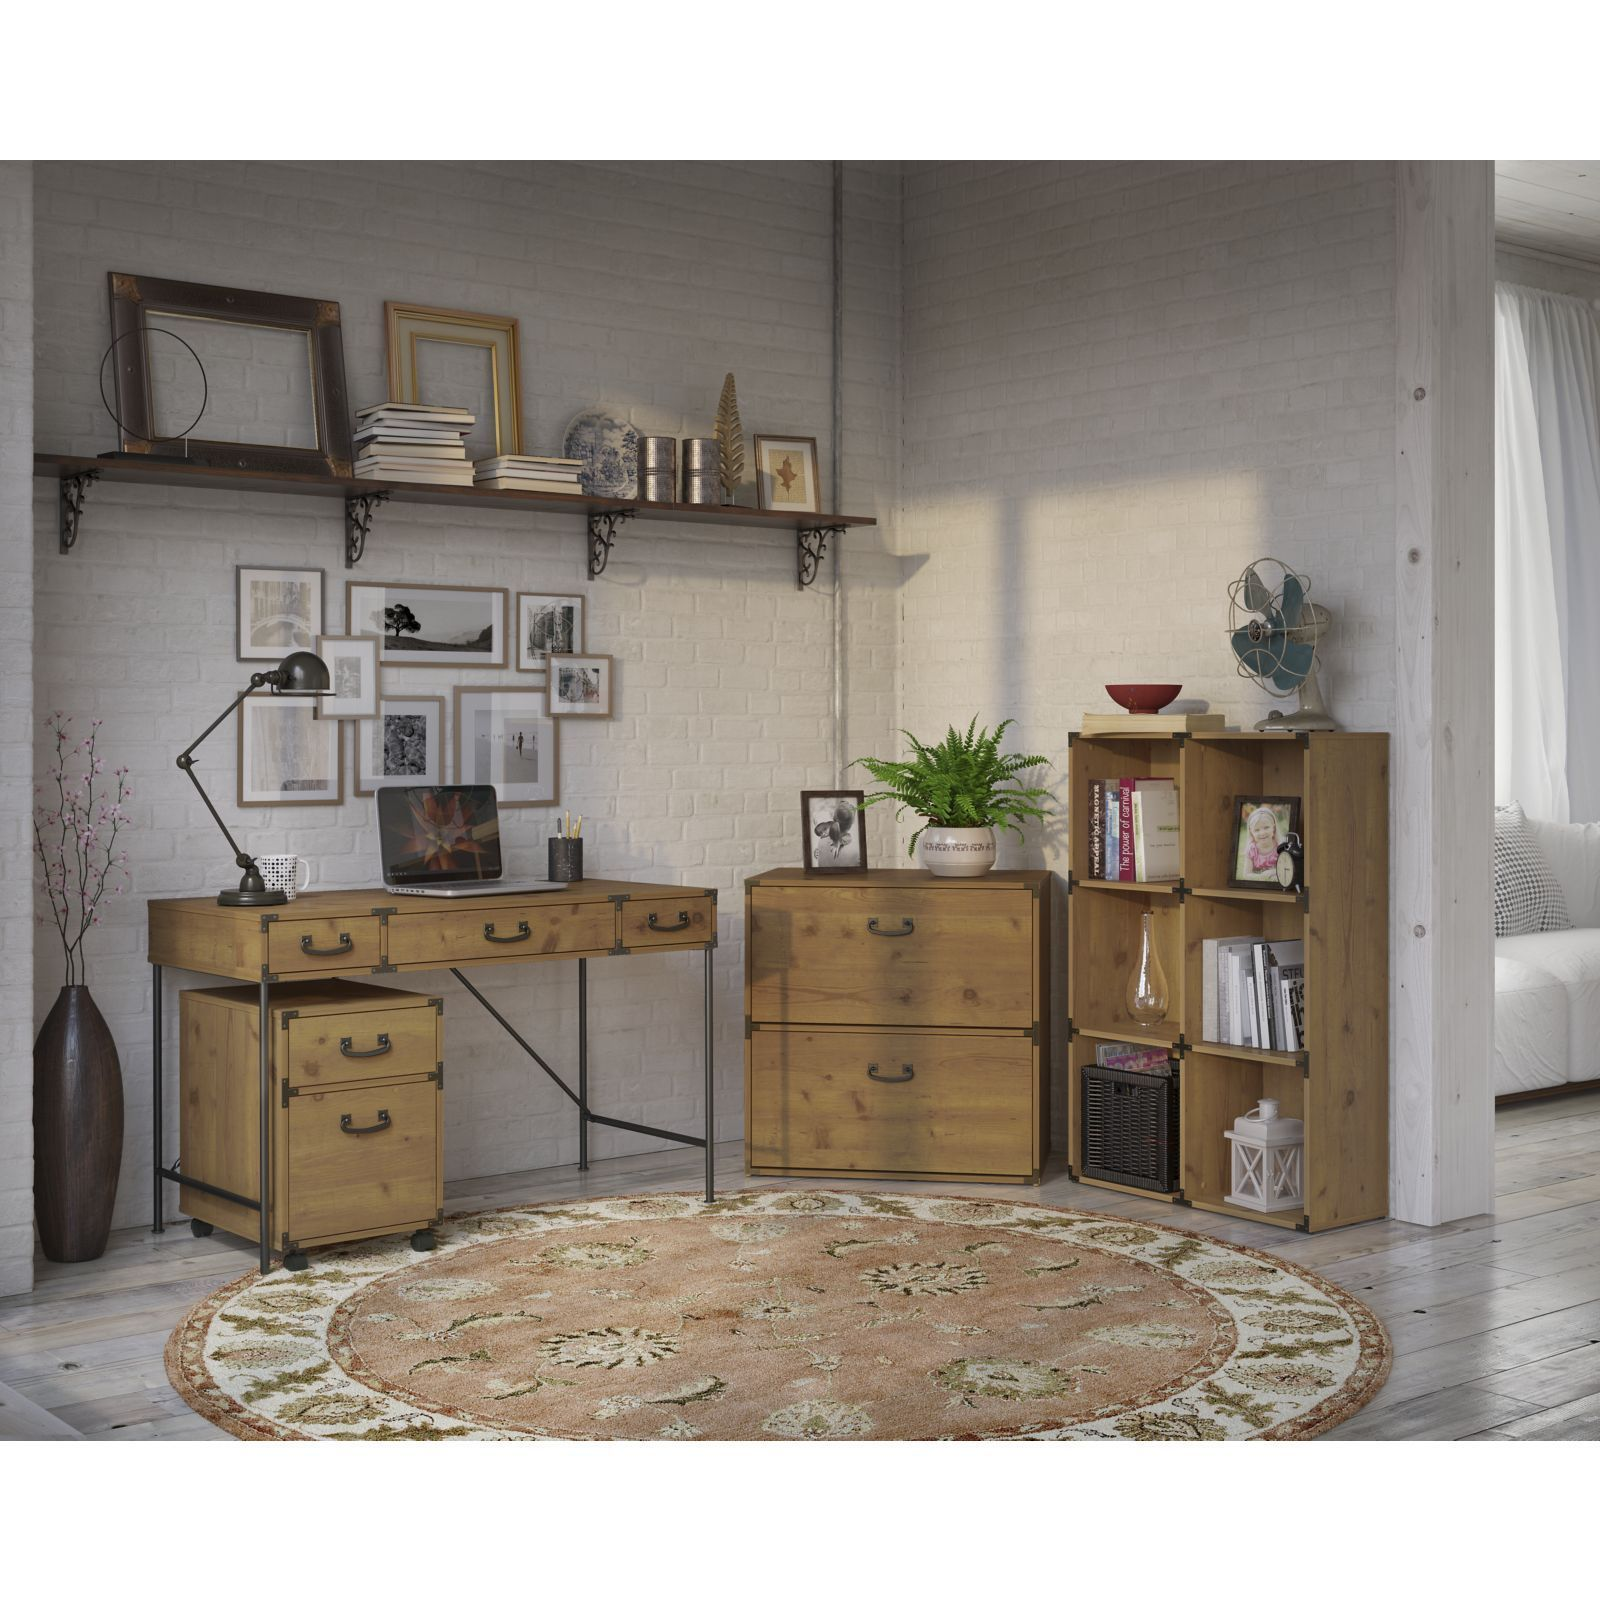 kathy ireland by bush ironworks 48w writing desk 2drawer mobile pedestal 6cube bookcase and lateral file cabinet 48w desk 2 dwr ped 6 cube bookcase